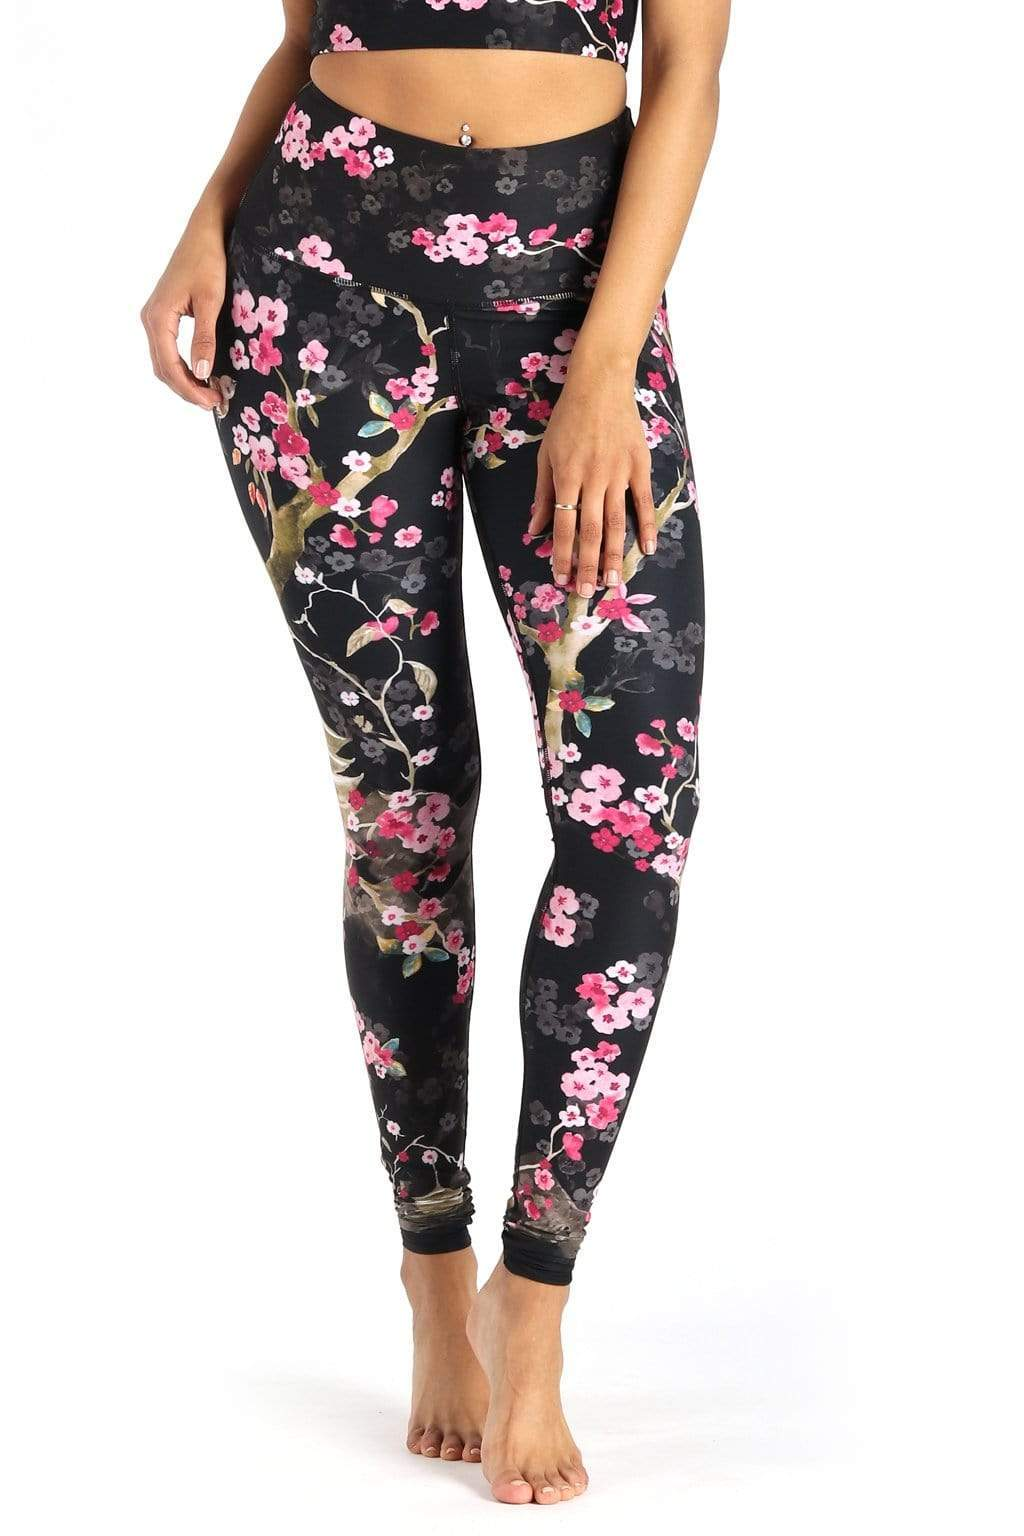 Yoga Democracy Leggings Cherry Bloomin Printed Yoga Leggings